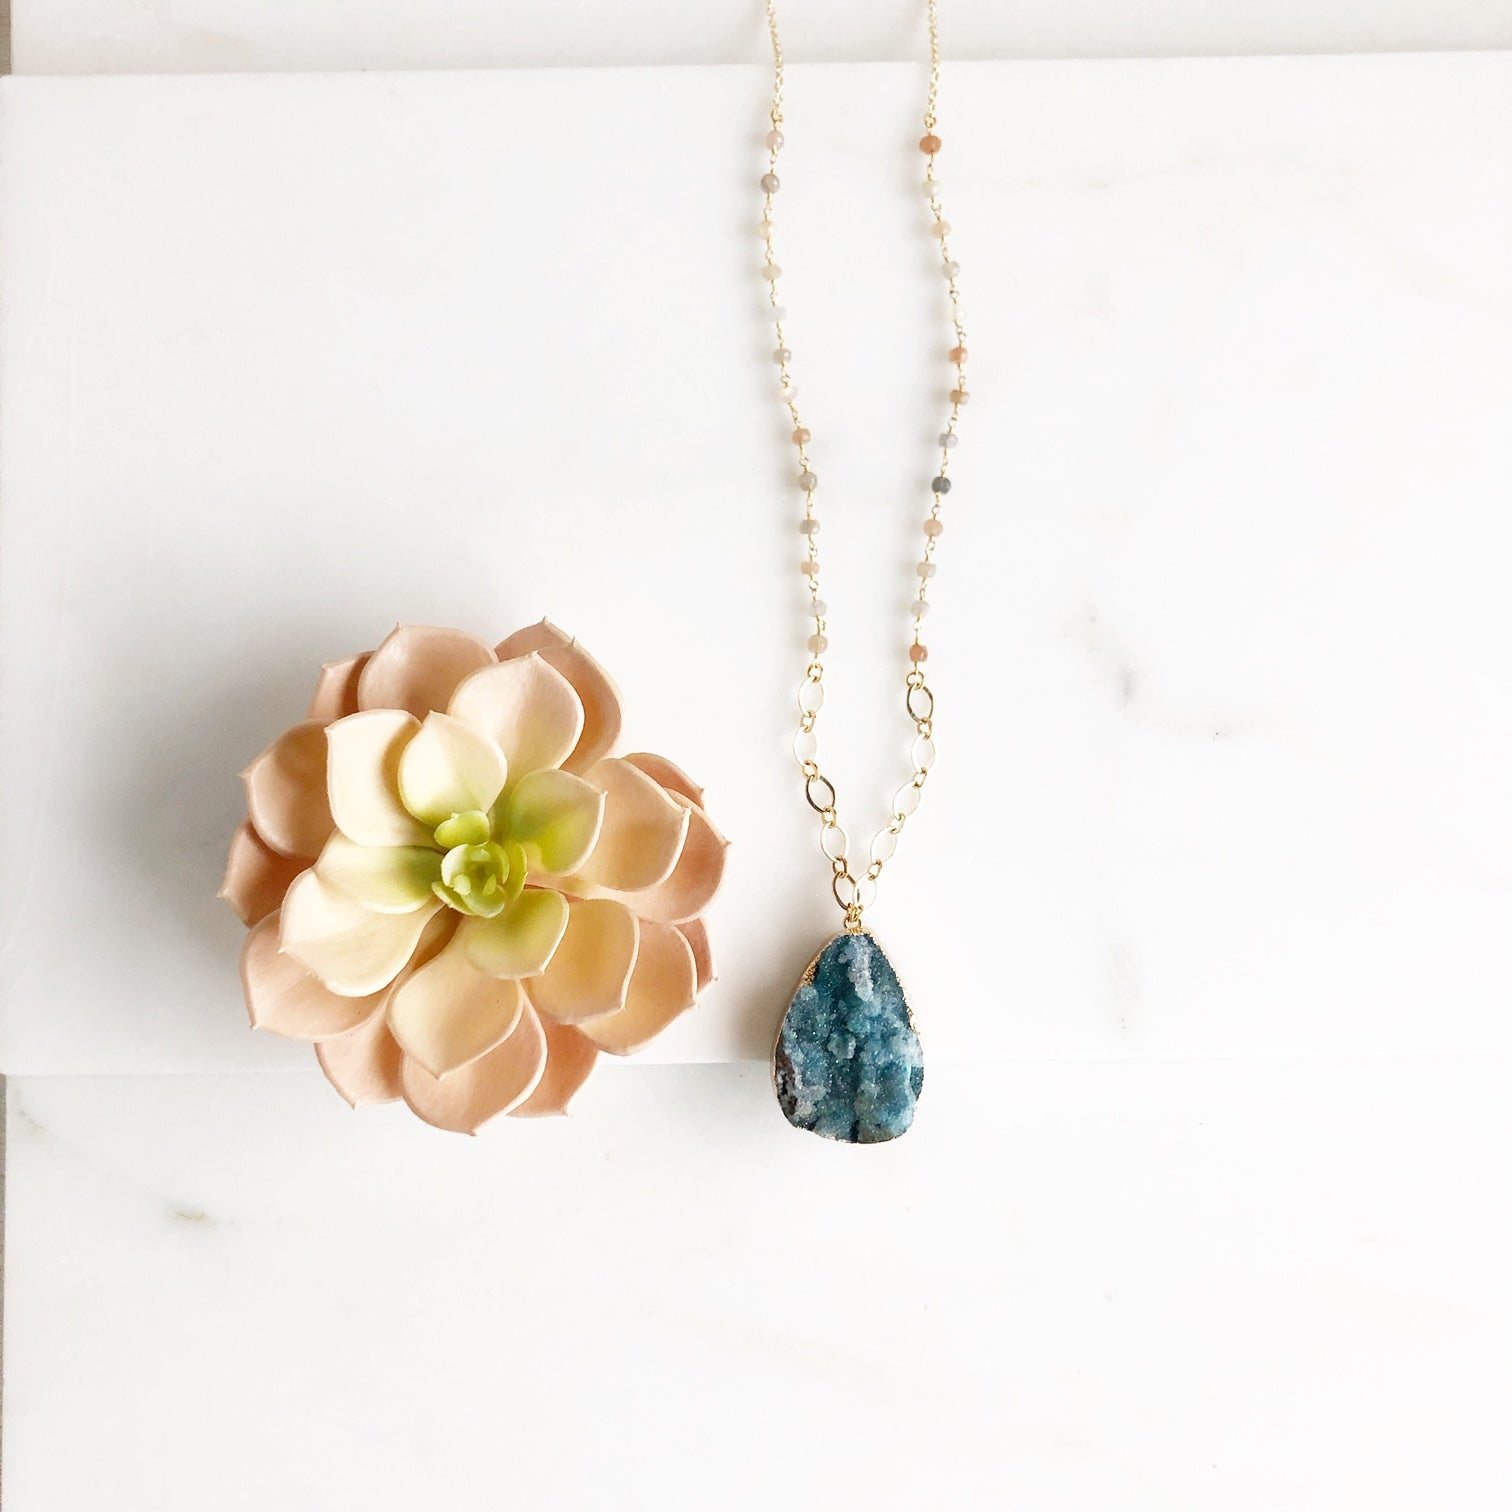 Long Teal Druzy and Moonstone Necklace in Gold.